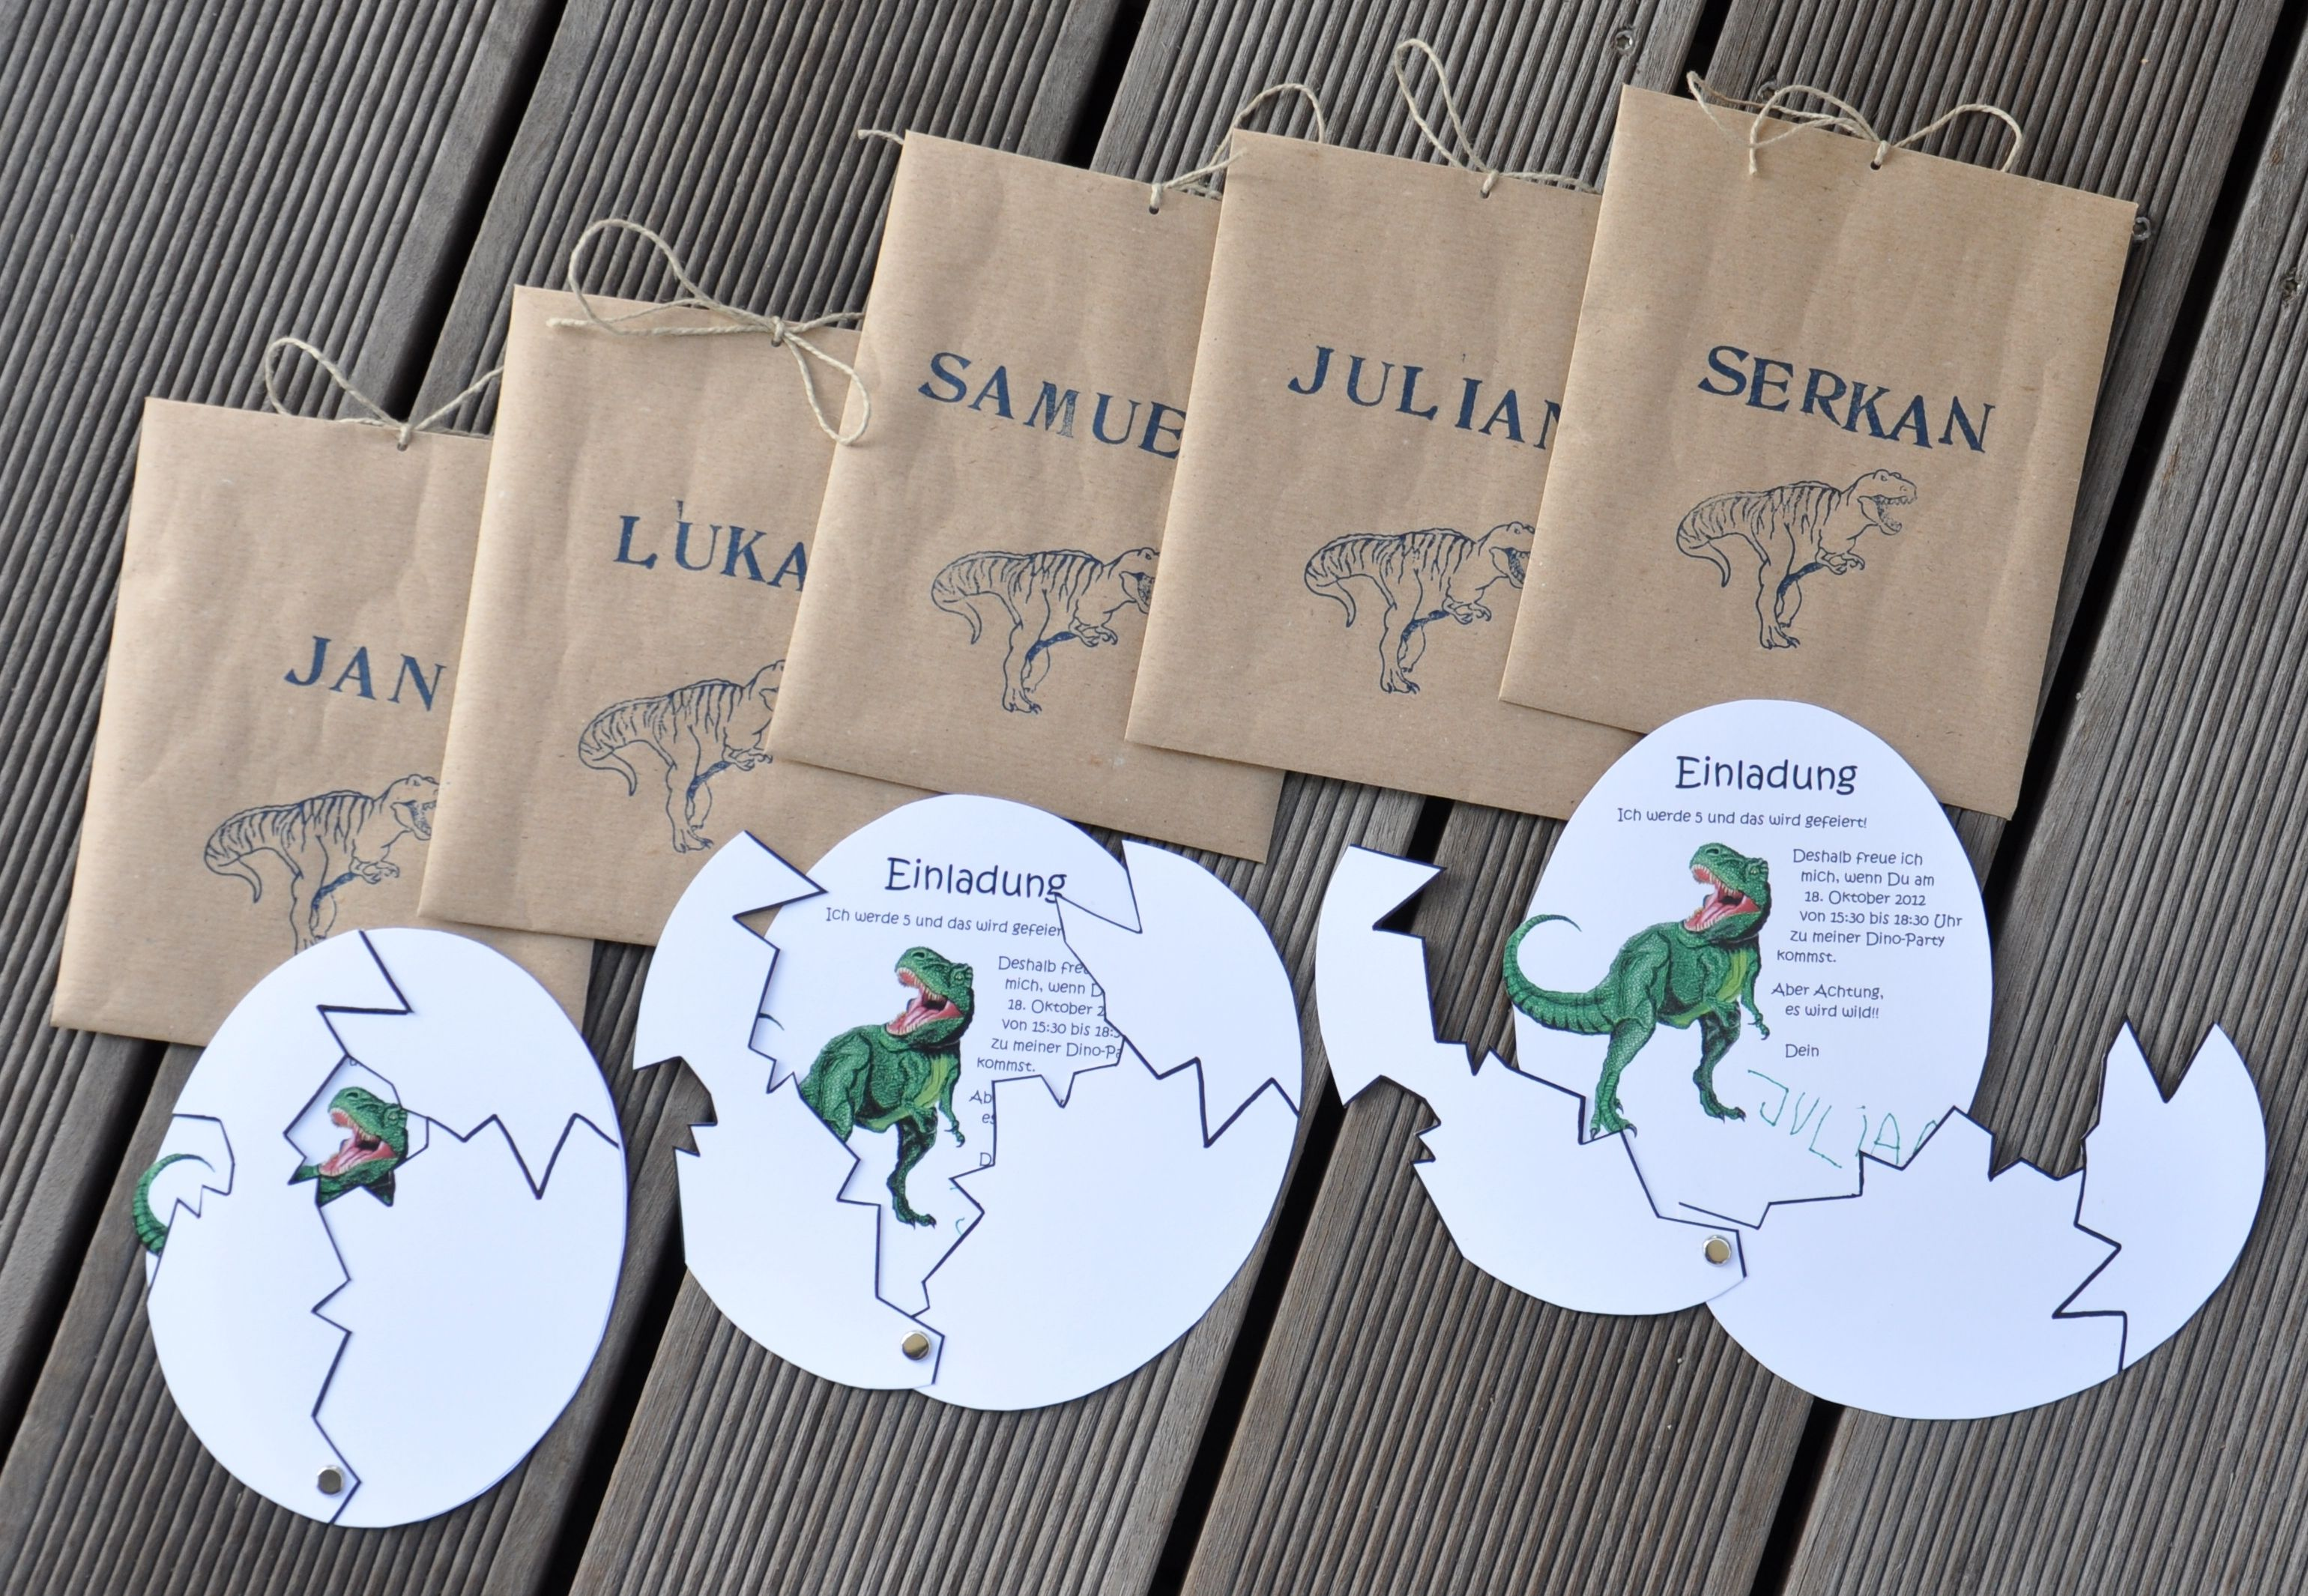 Dino Party Einladungen DIY Pinterest